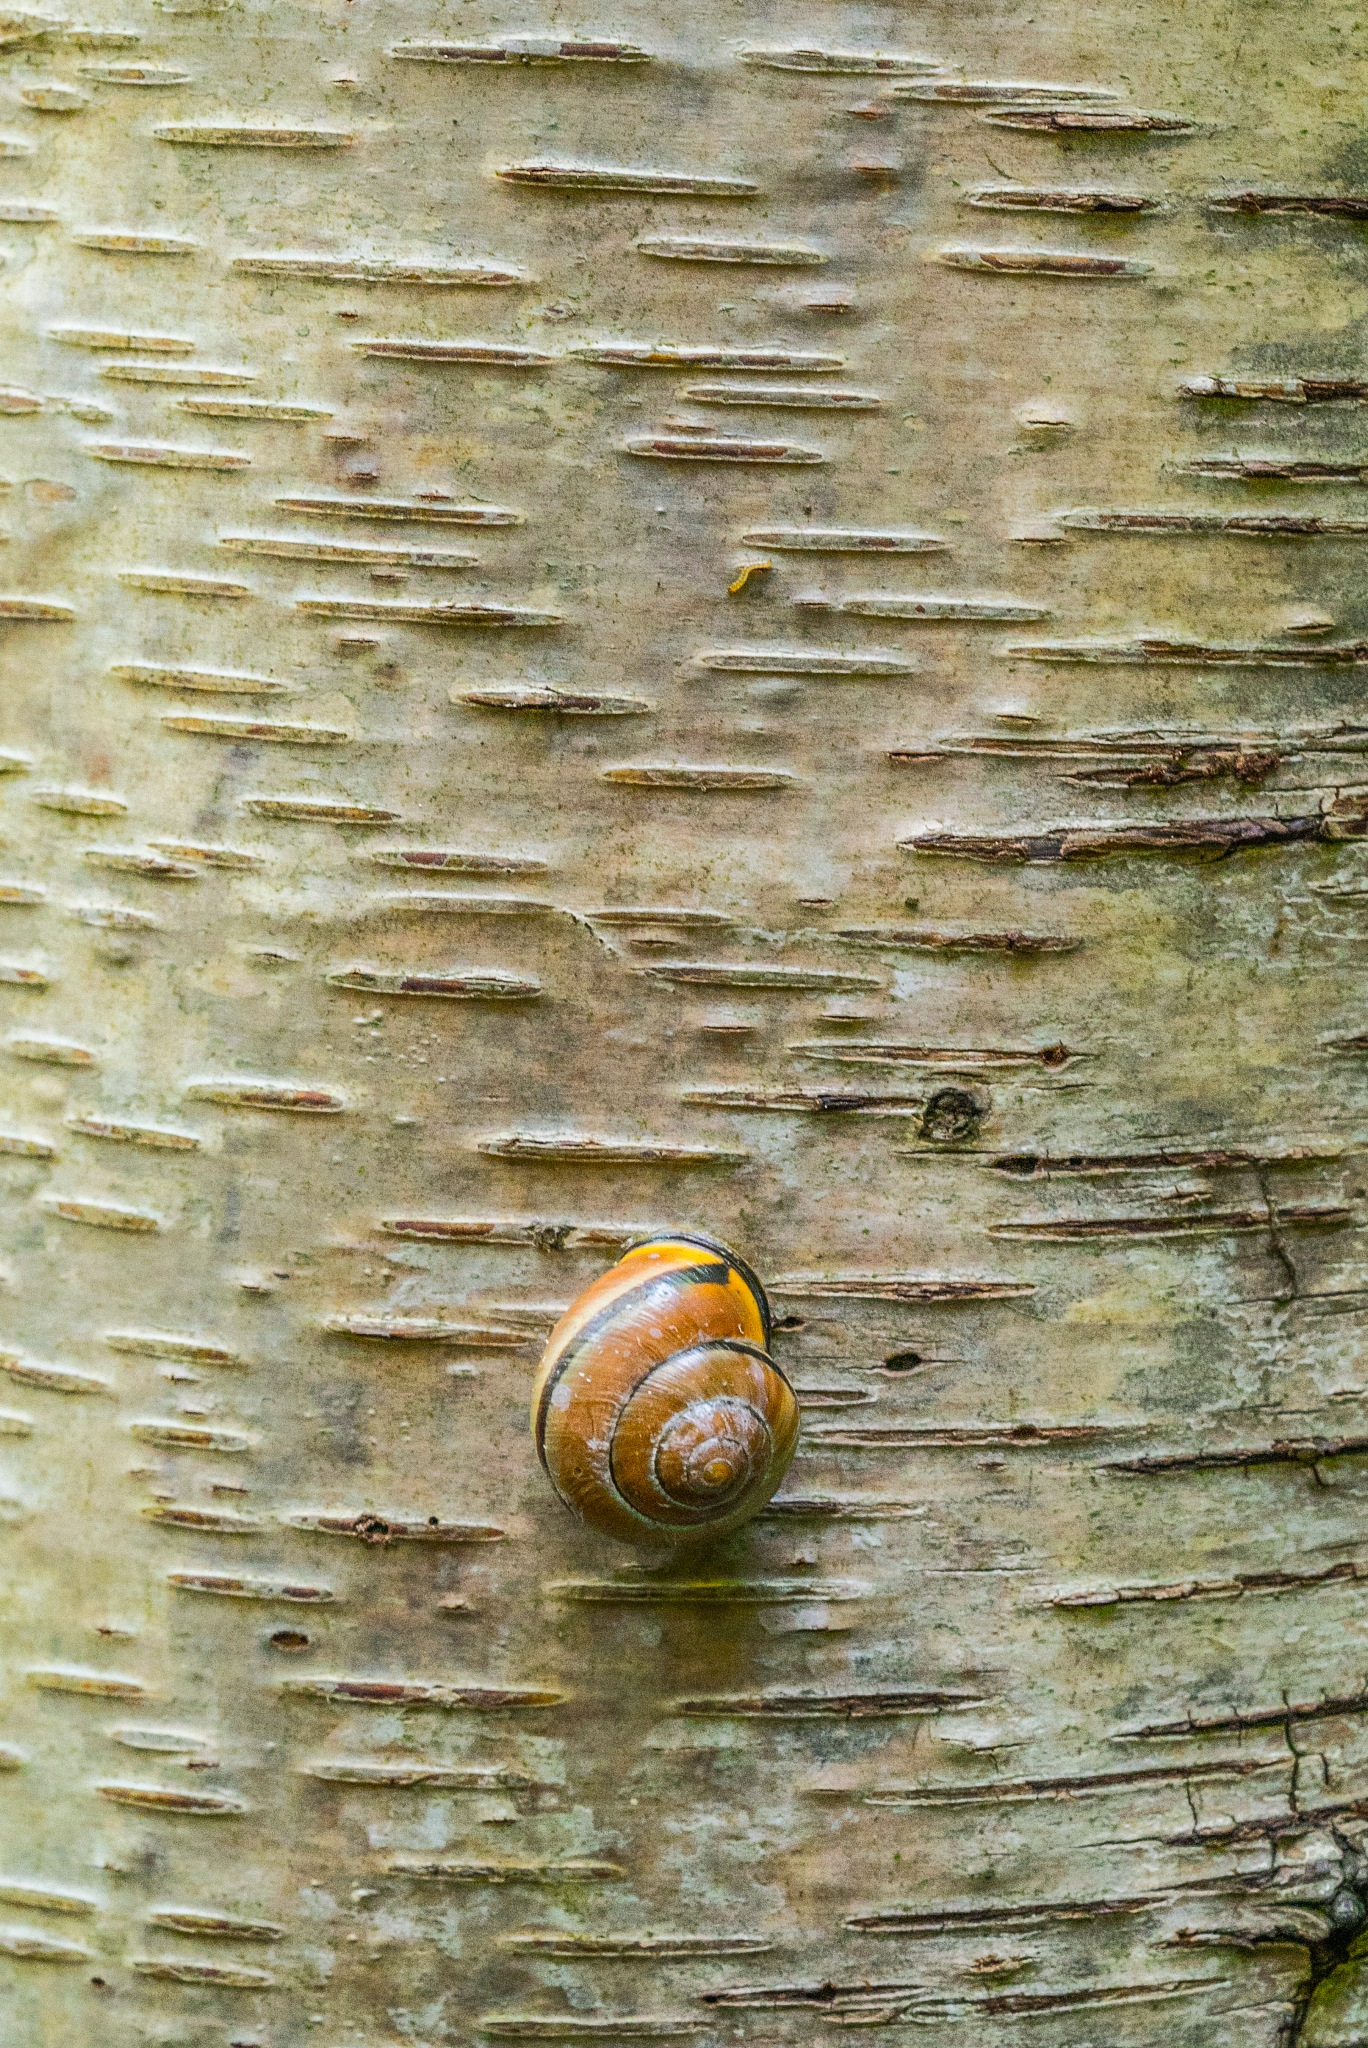 Snail on a tree by fred.leeflang.7